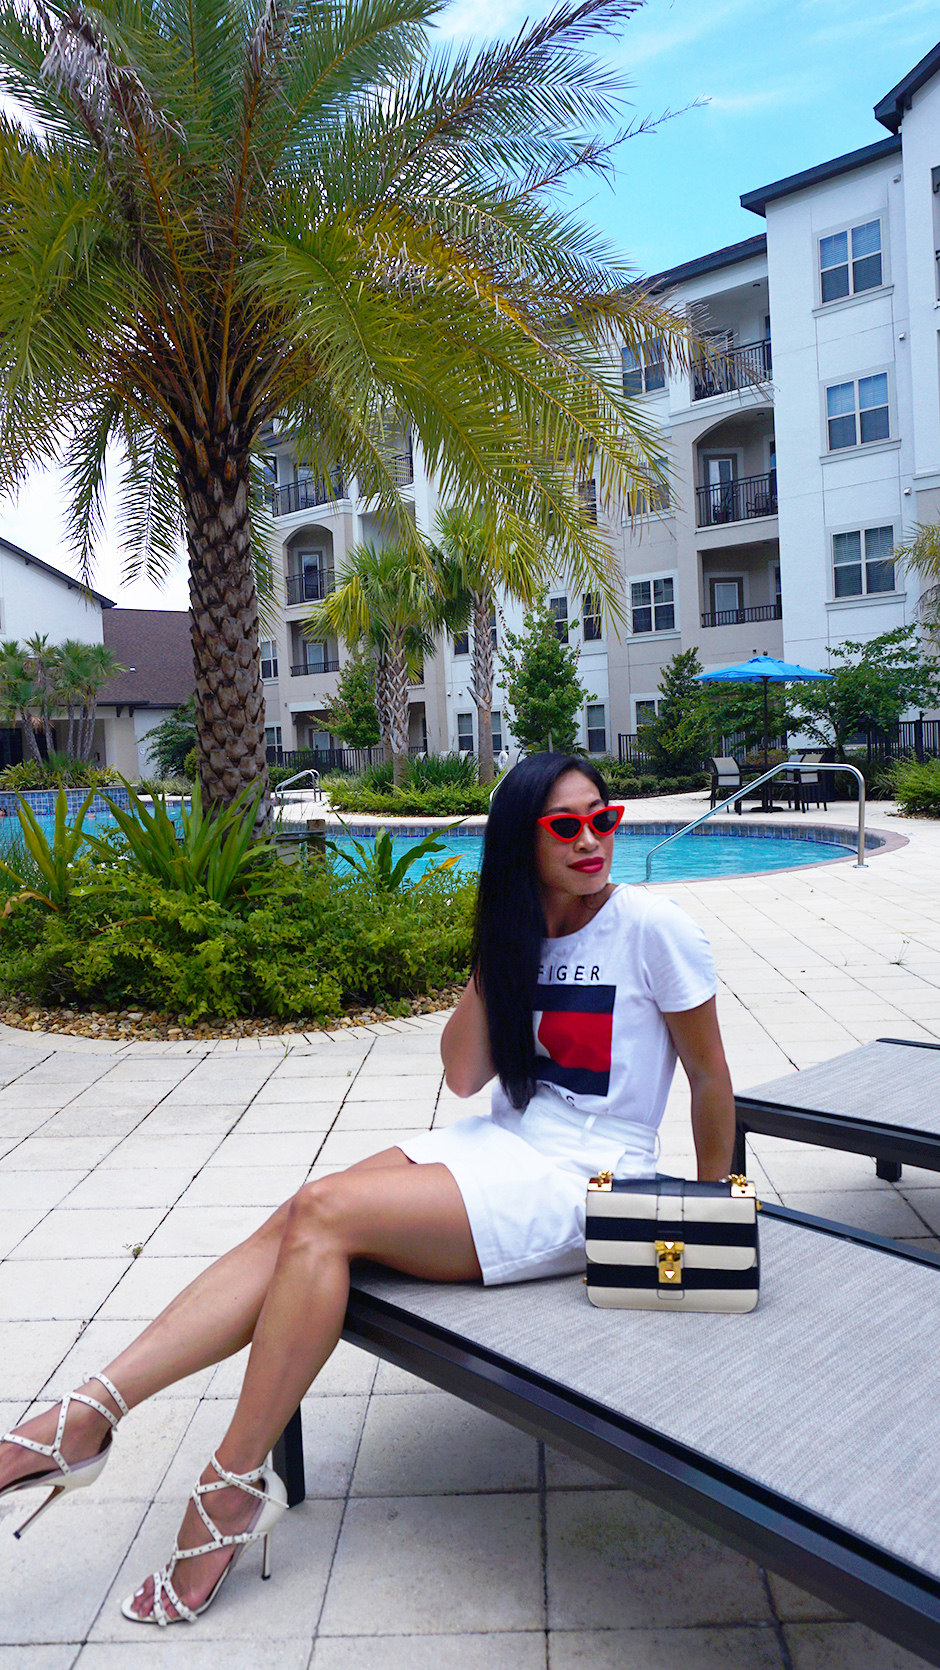 Elevating Sportswear with Tommy Hilfiger and Macys #ad #sportswear #summerstyle #summeroutfit #fashionblog #stylebloog #streetstyle #fashionideas #outfitinspo #outfitinspiration #outfitideas #tshirt #logotee #fashiontrend #miniskirt #skirt #microsunglasses #stylishoutfit #ootd #whatiwore #tommyhilfiger #macys #macyslove #sponsored